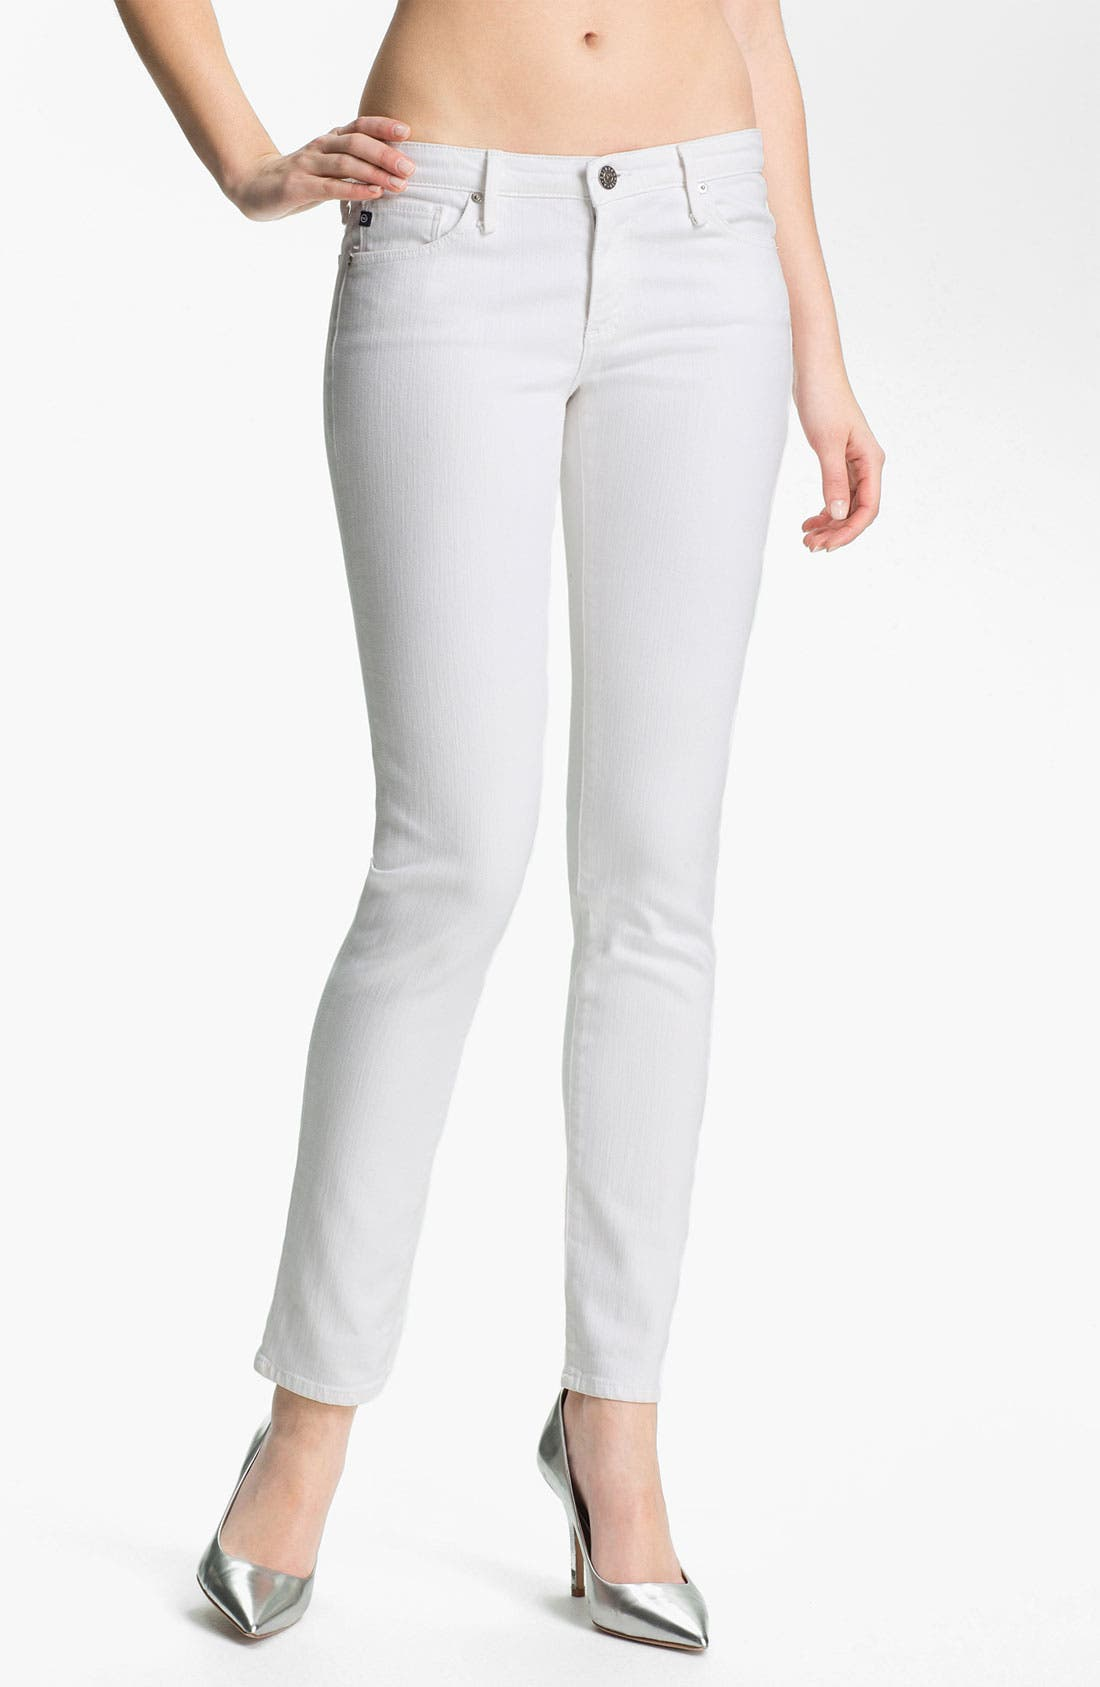 Alternate Image 1 Selected - AG Jeans 'Stilt' Cigarette Leg Stretch Jeans (White)